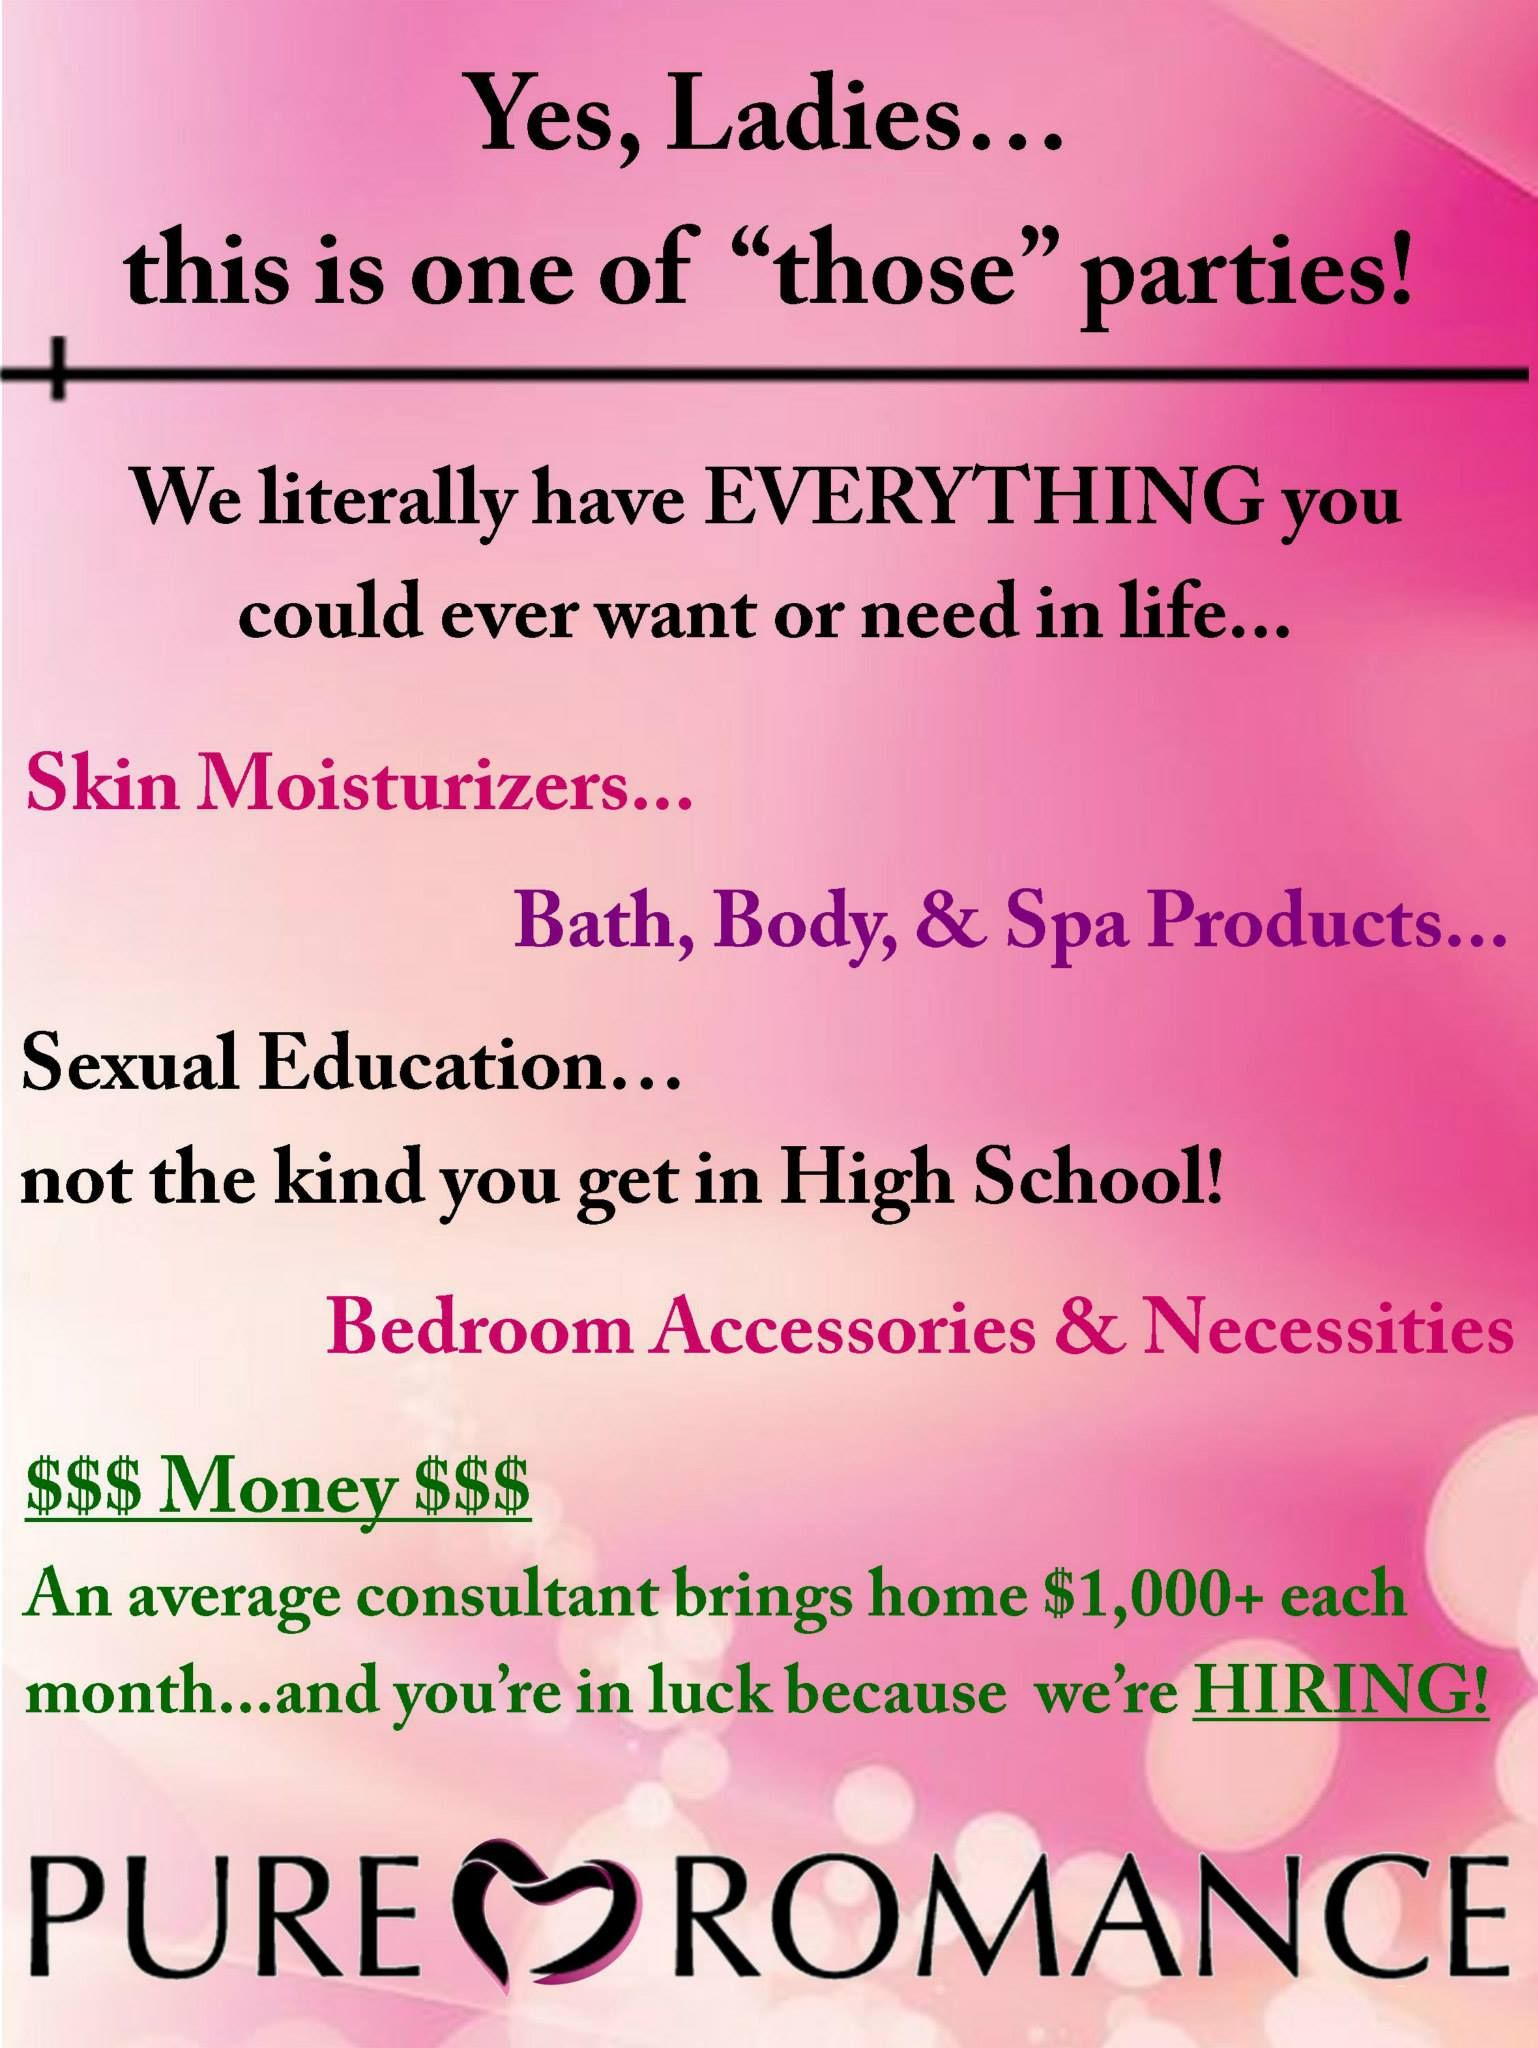 Start sex toy home party business